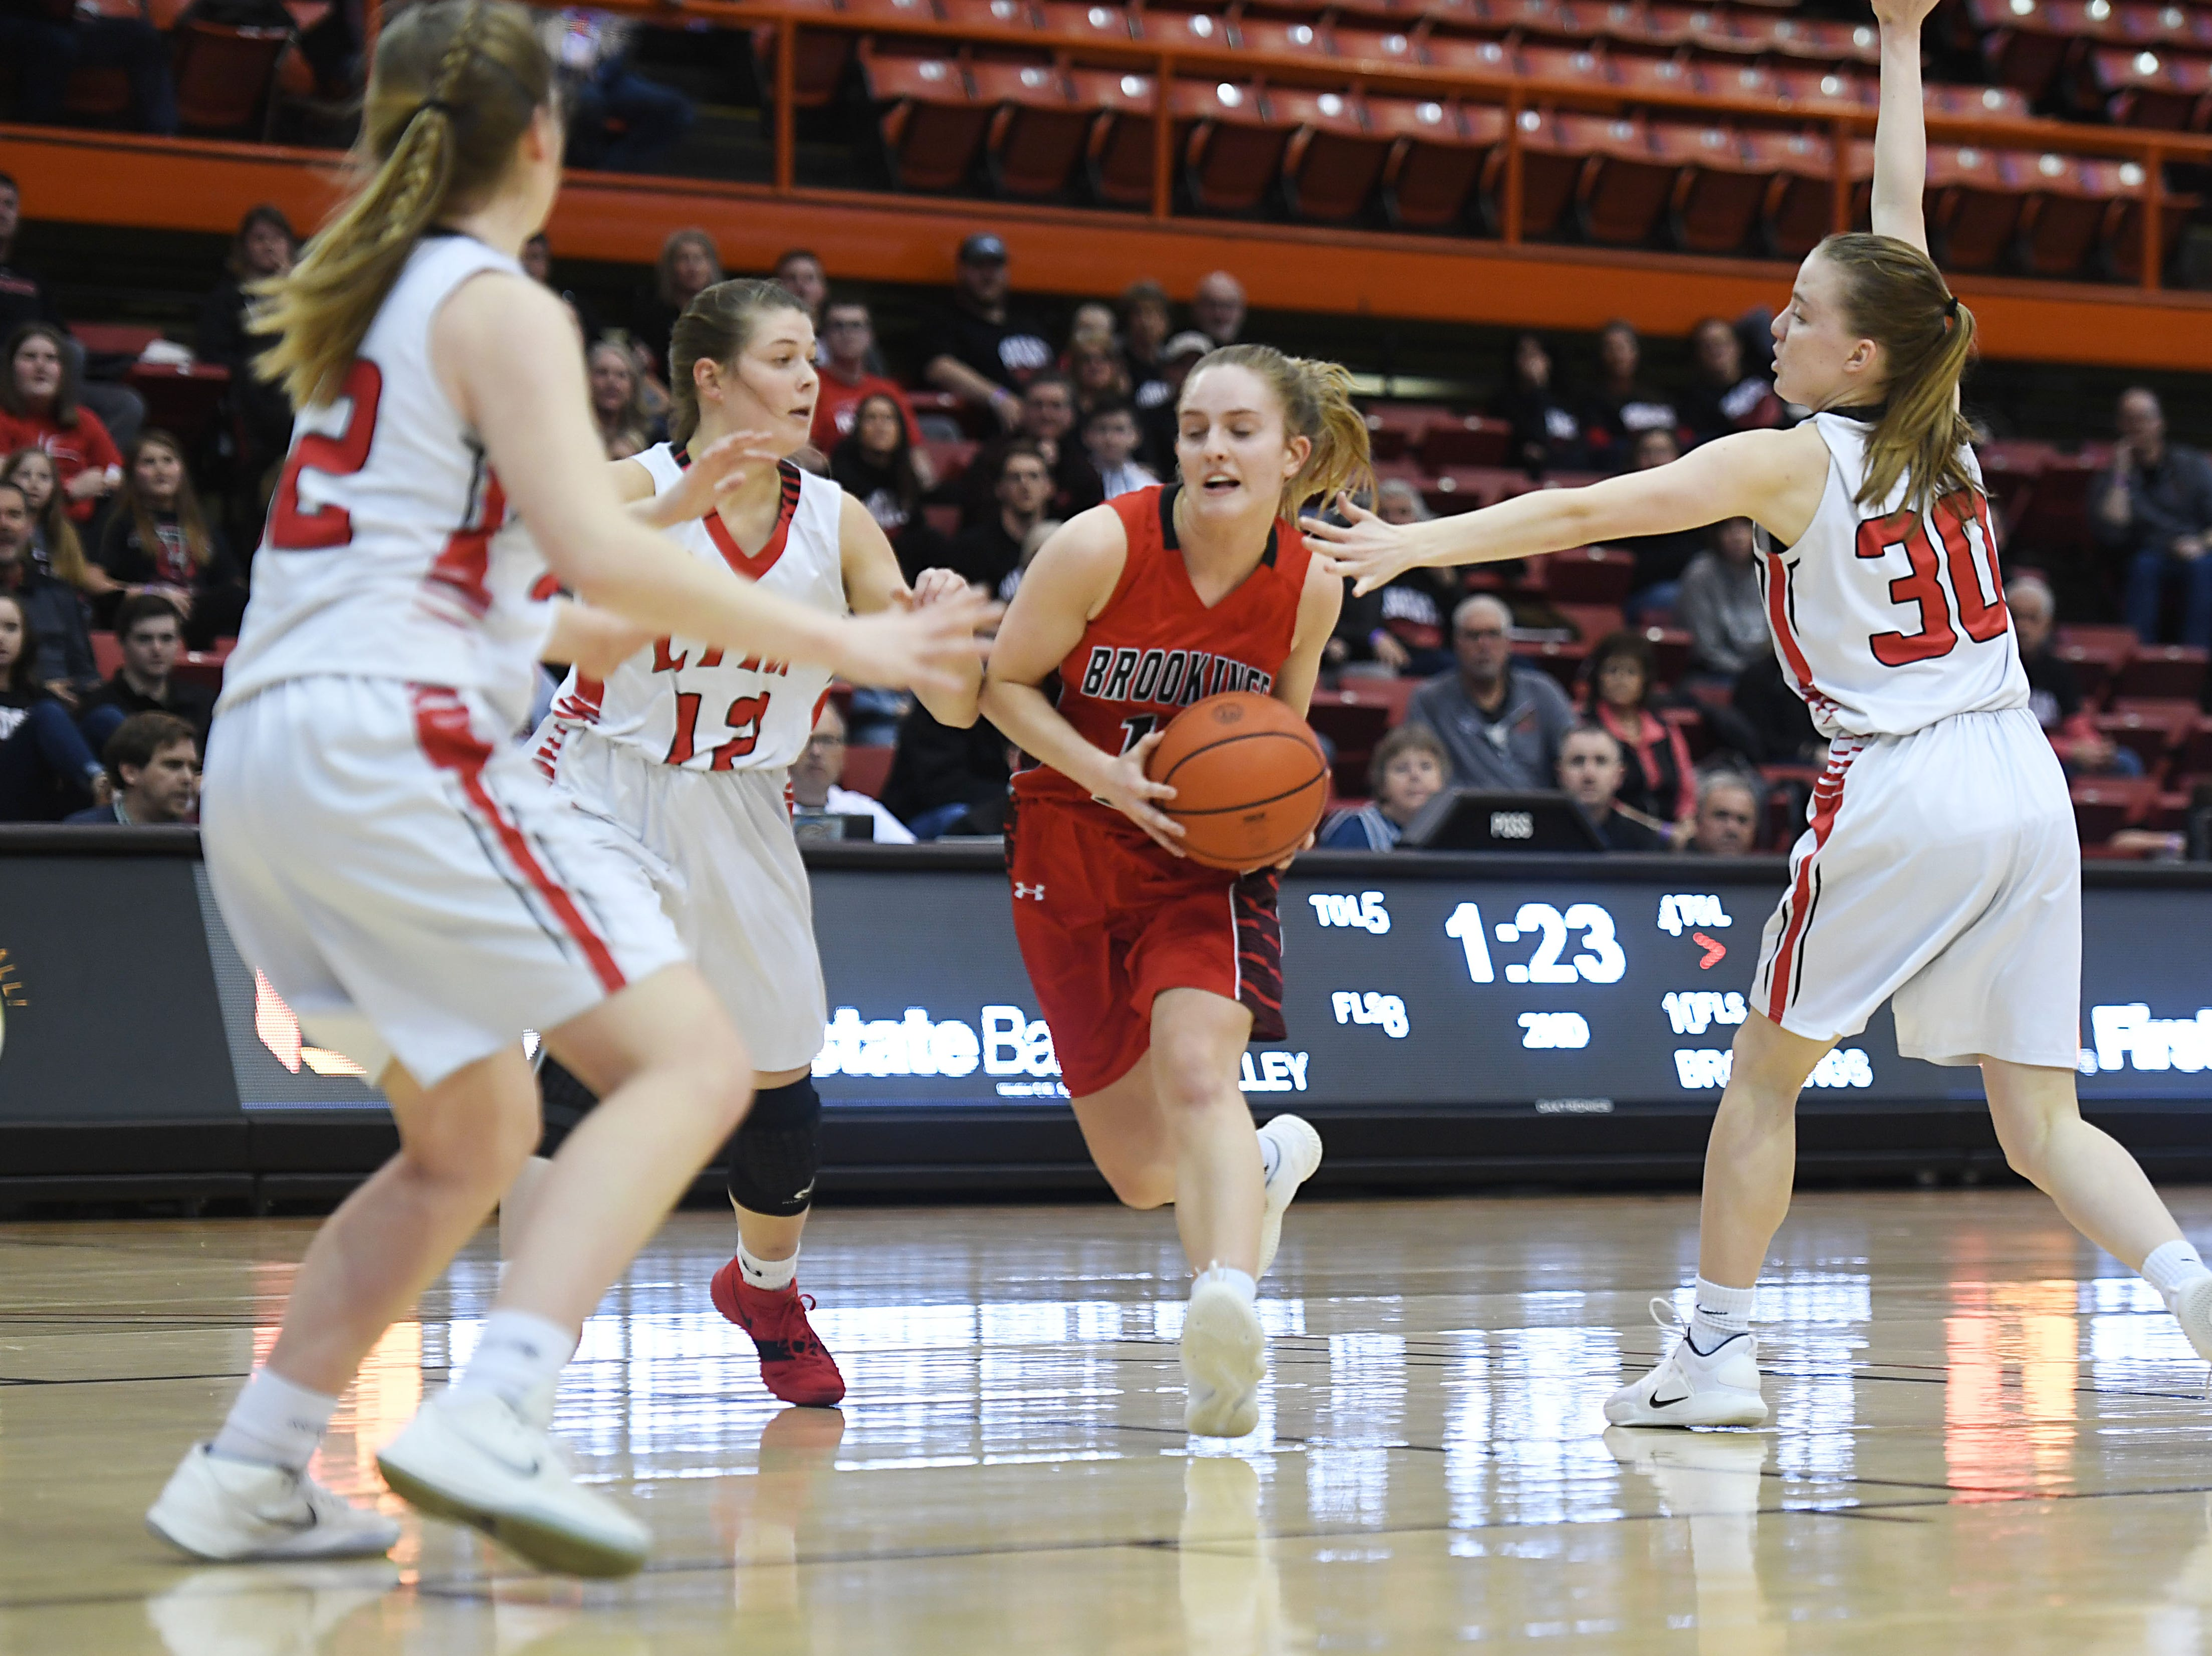 Brookings's Carolyn Hieb goes against Brandon Valley defense during the game in the Class AA quarterfinals Thursday, March 14, in Rapid City.